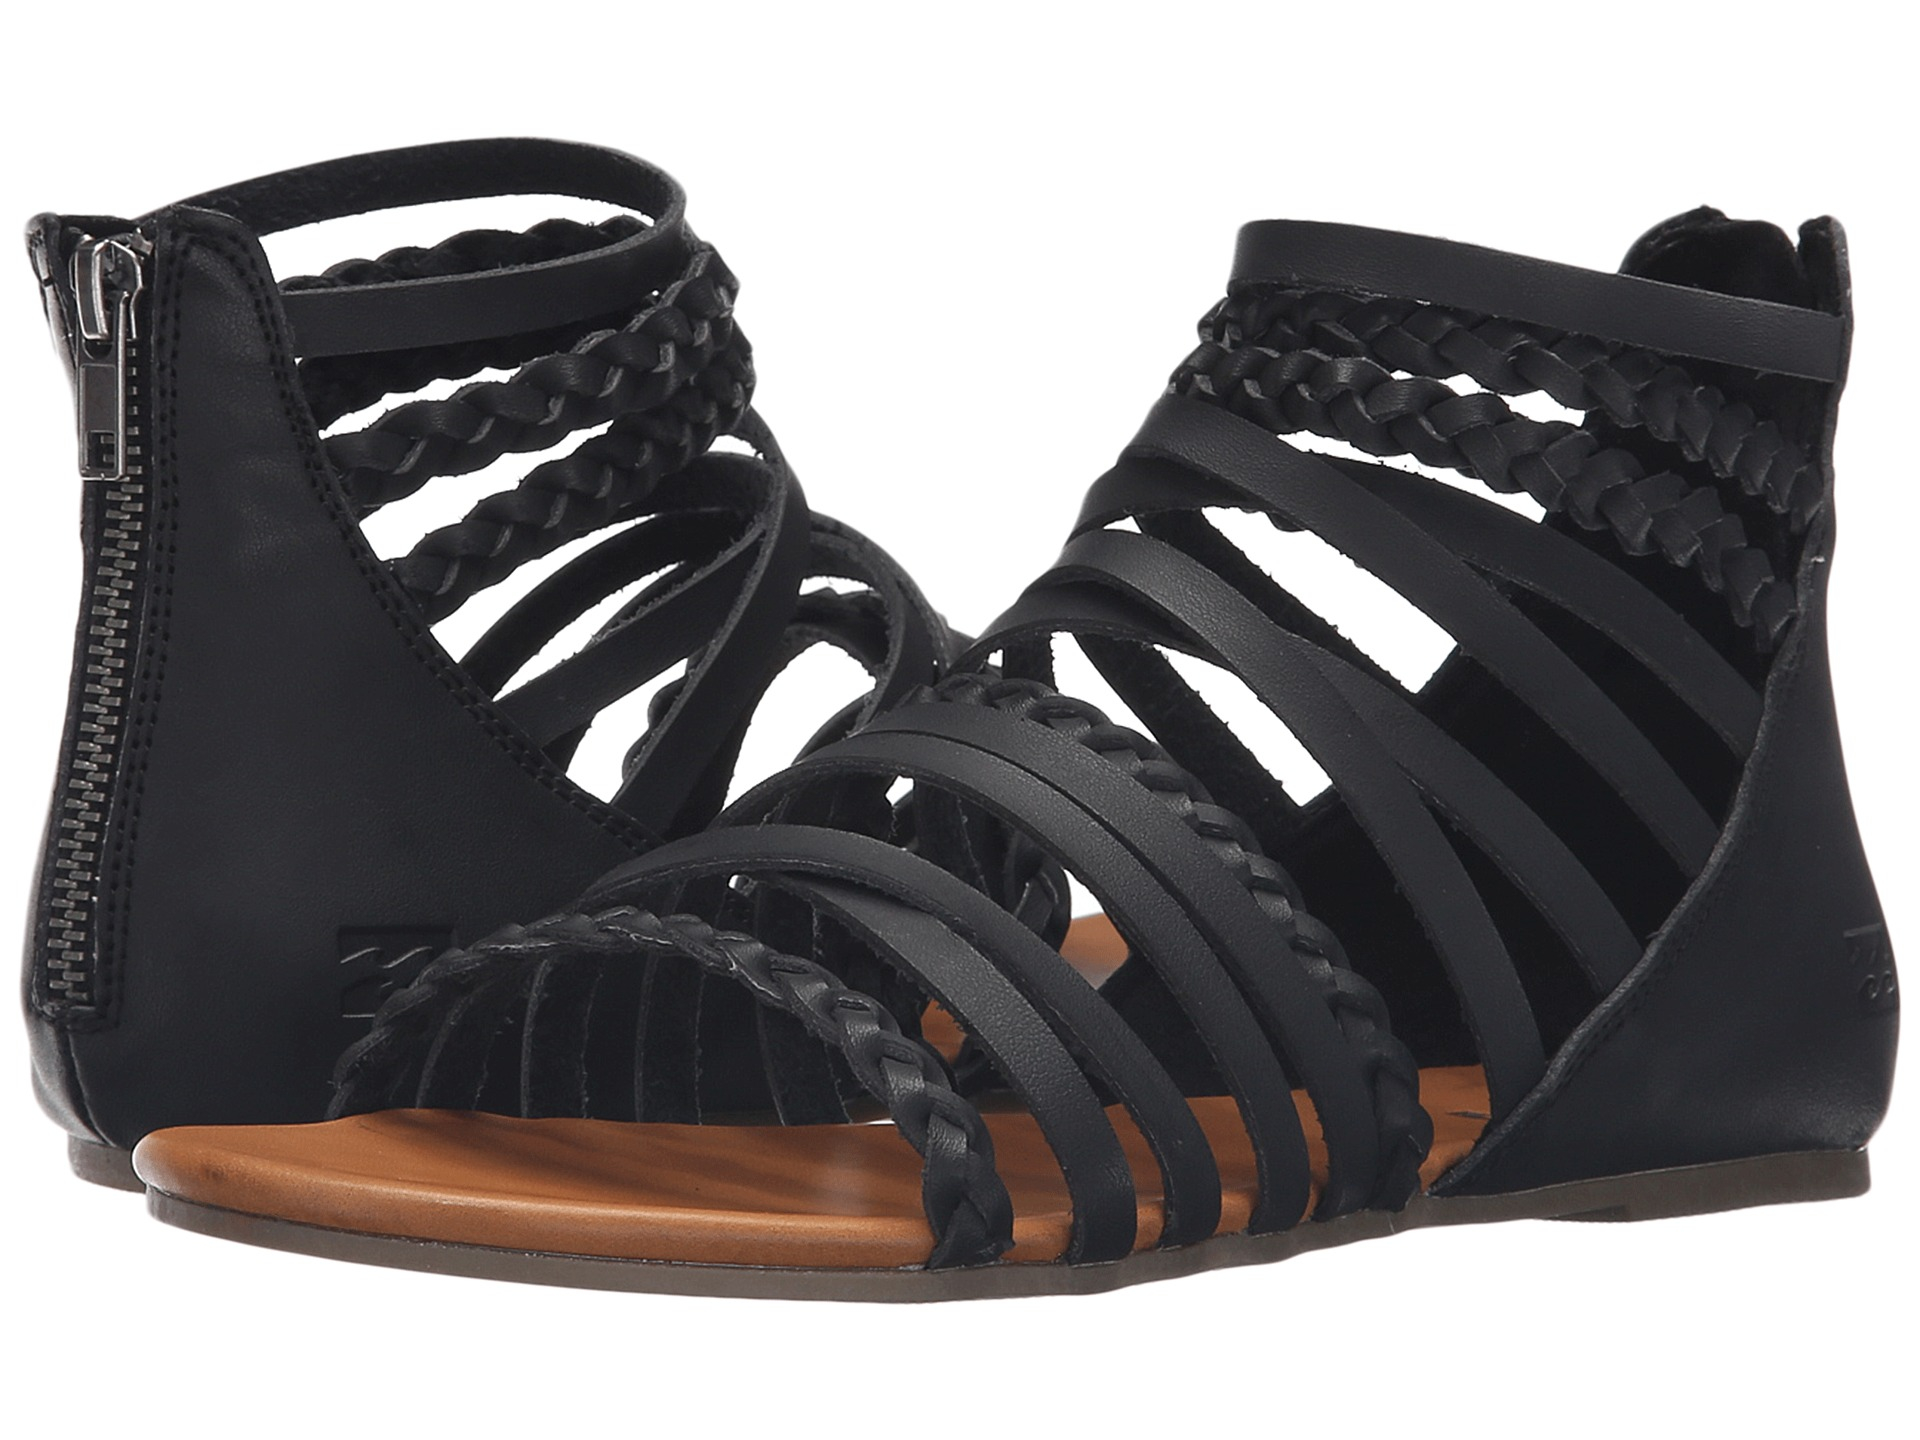 257b1f39164 Lyst - Billabong Sunset Lover Sandal in Black